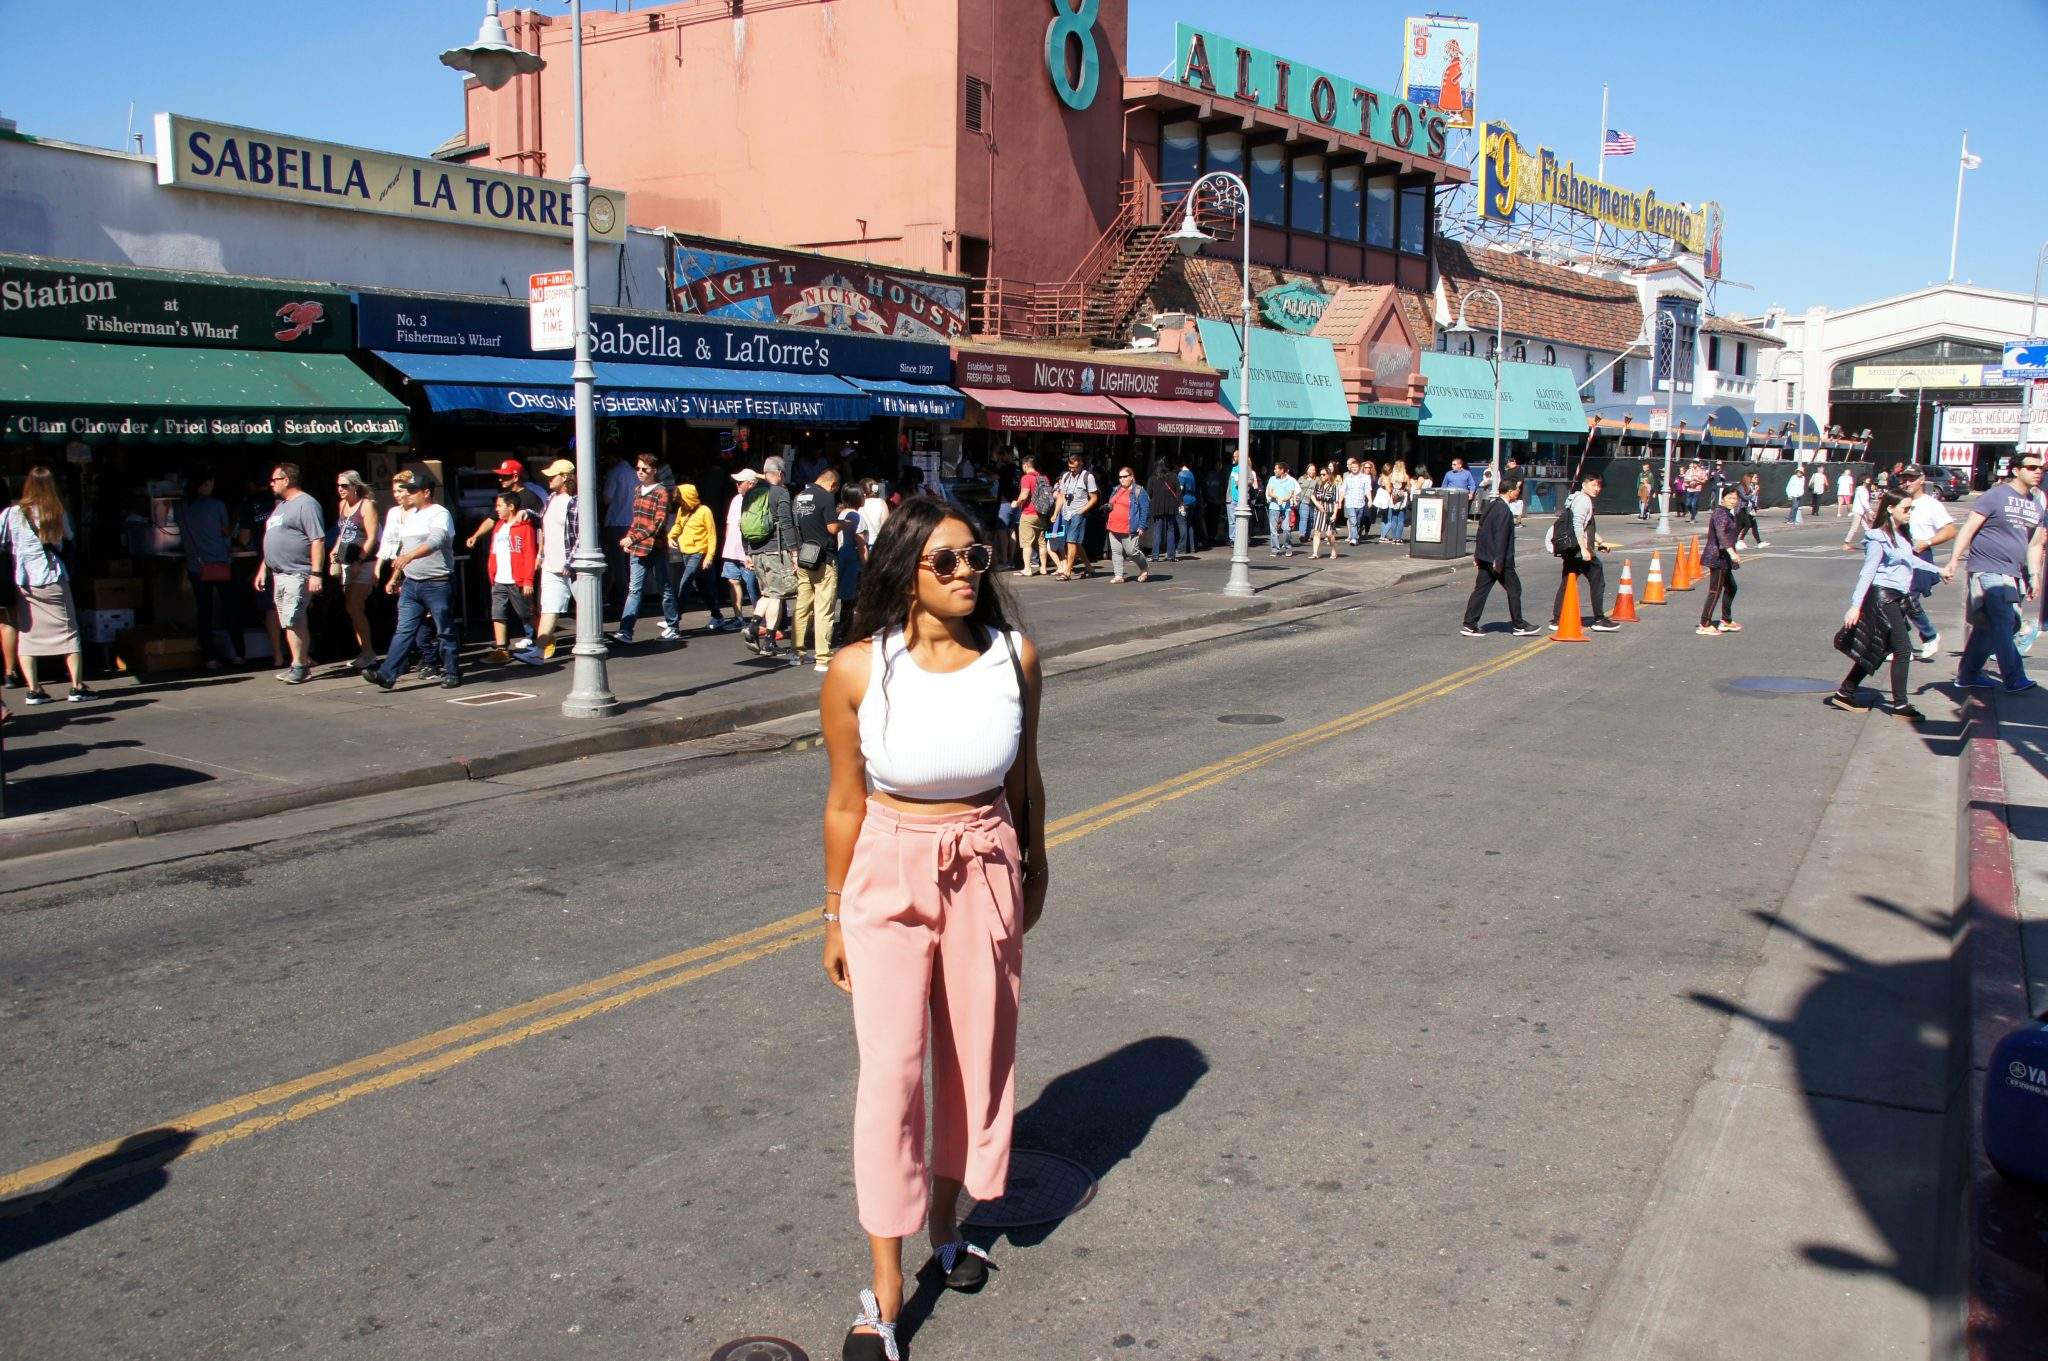 me strolling around in Fishermans Wharf, port of San Francisco